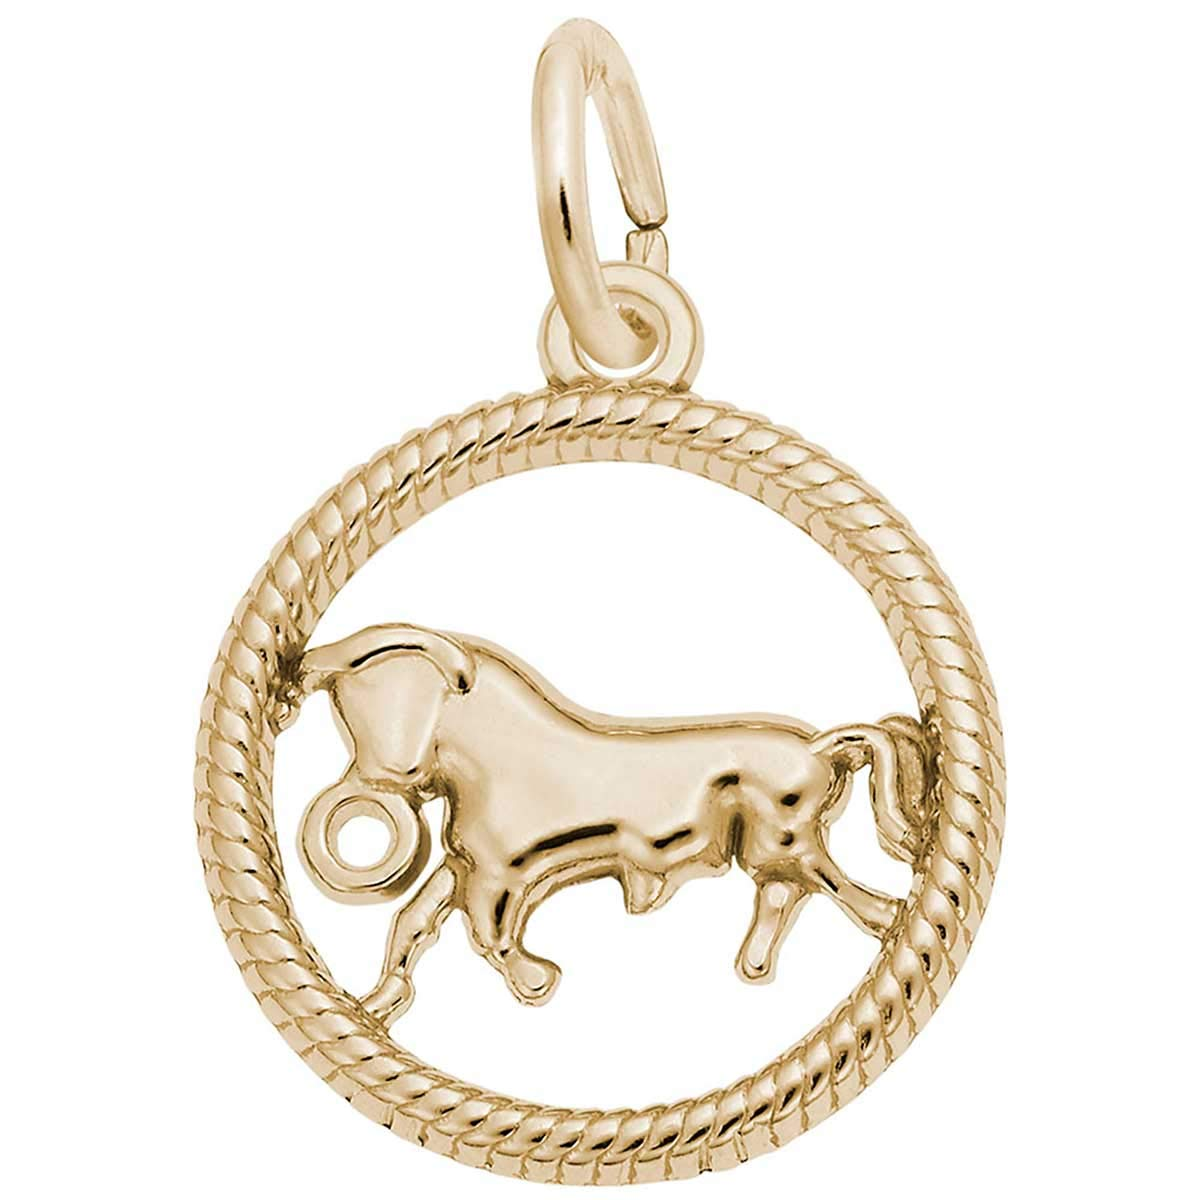 10K Yellow Gold Rembrandt Charms Taurus Charm